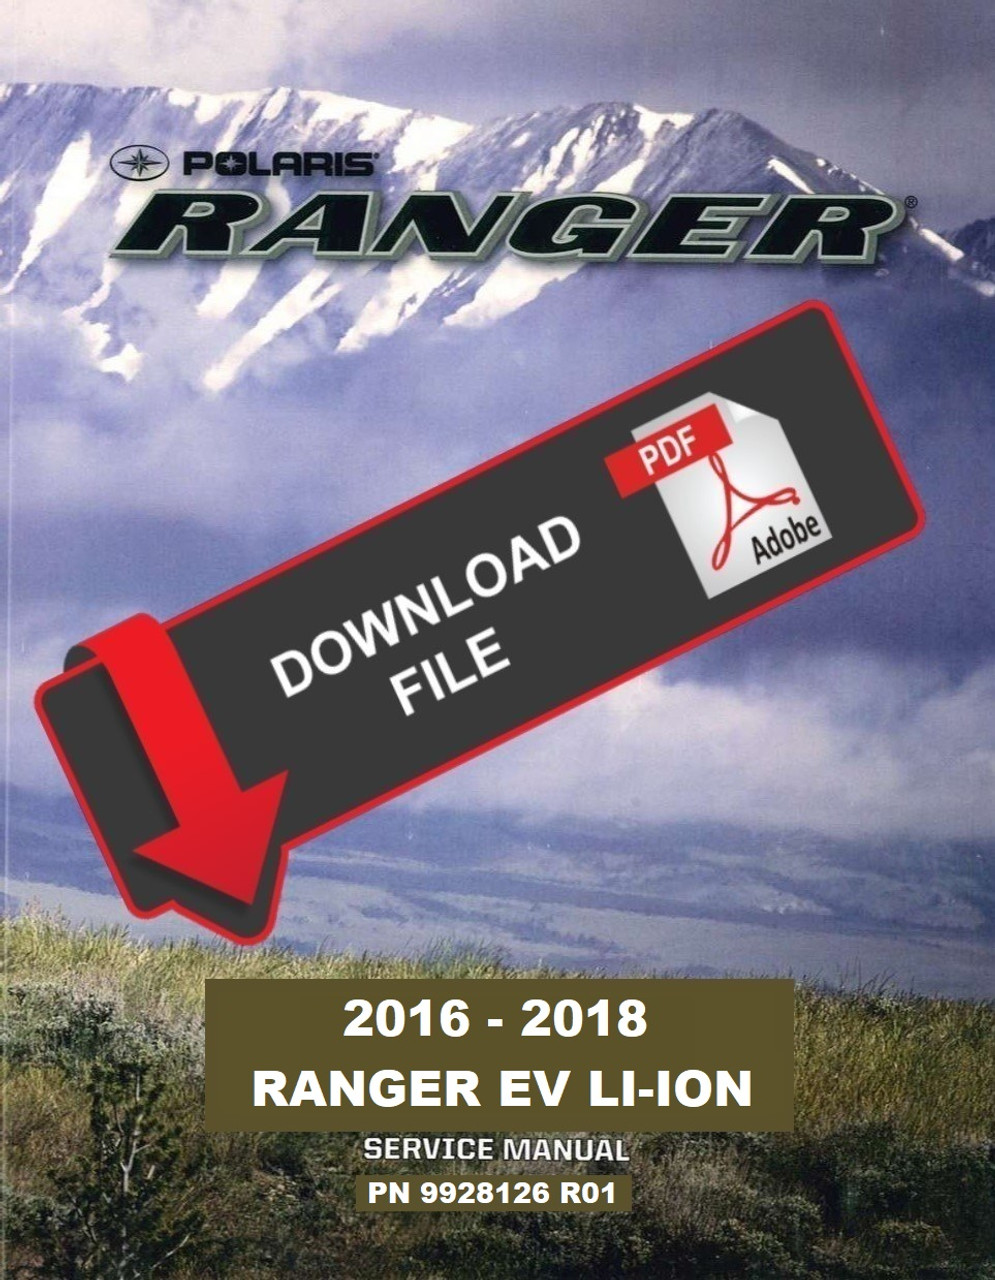 polaris 2018 ranger ev li ion electric service manual [ 963 x 1239 Pixel ]